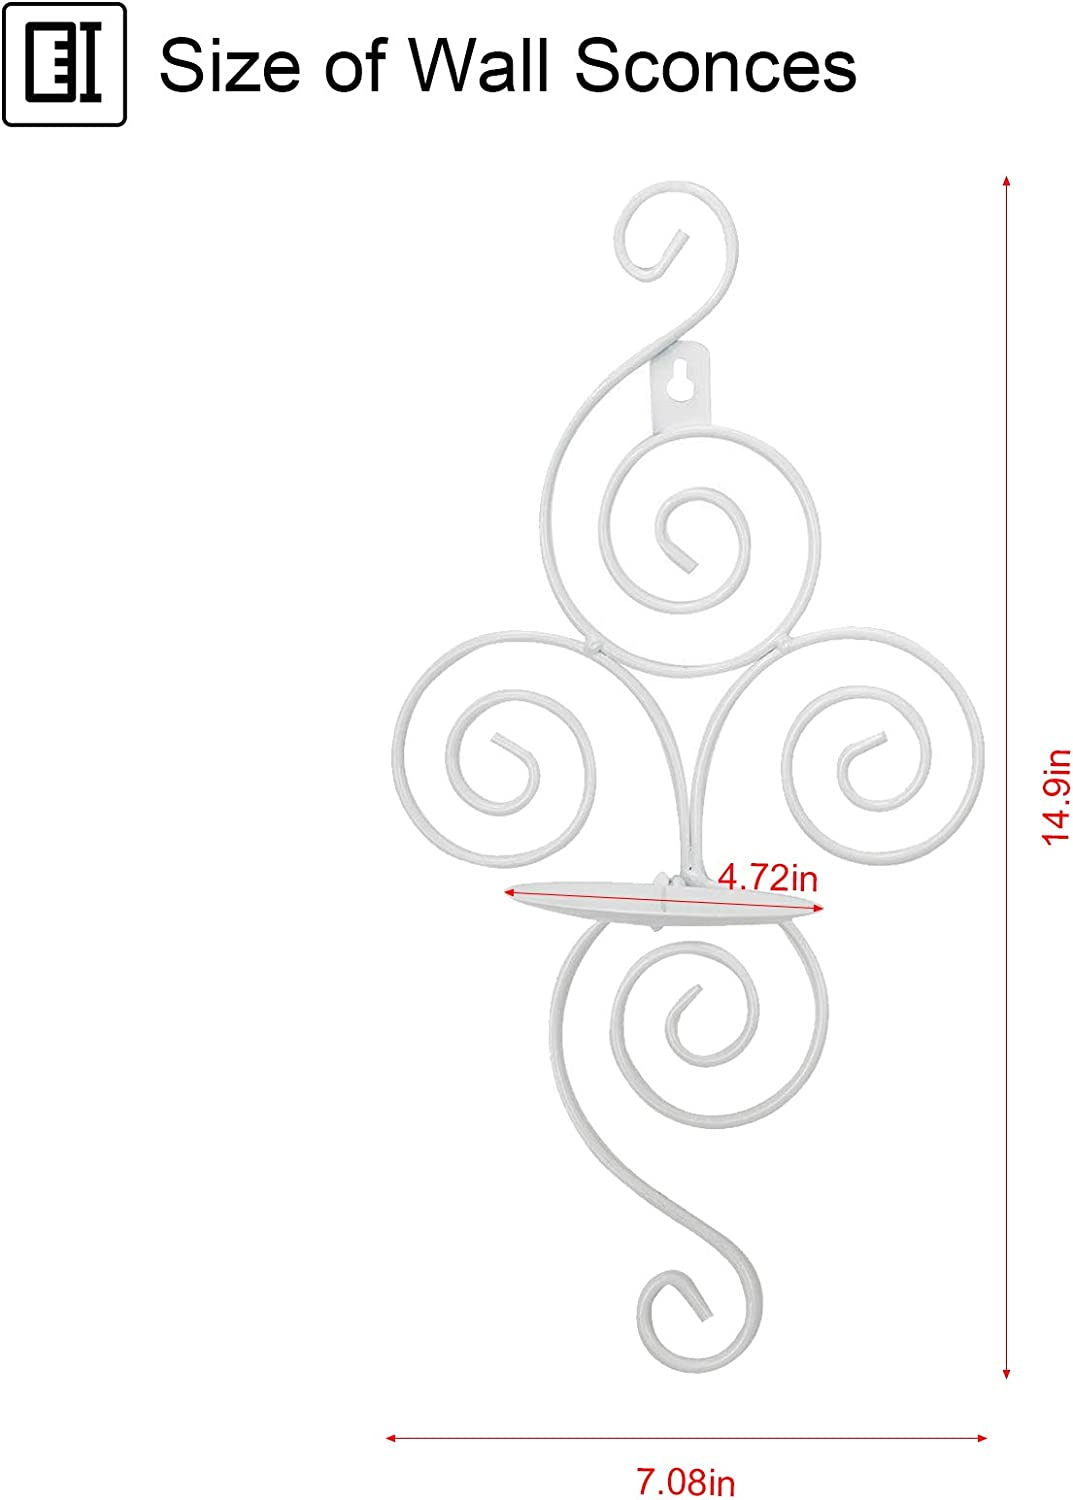 Dyna-Living Wall Sconce Candle Holder Wall Candle Sconces Set of 2 Elegant Swirling Iron Hanging Wall Candle Holders for Living Room Bathroom Fireplace Interior Home Decor(White): Kitchen & Dining